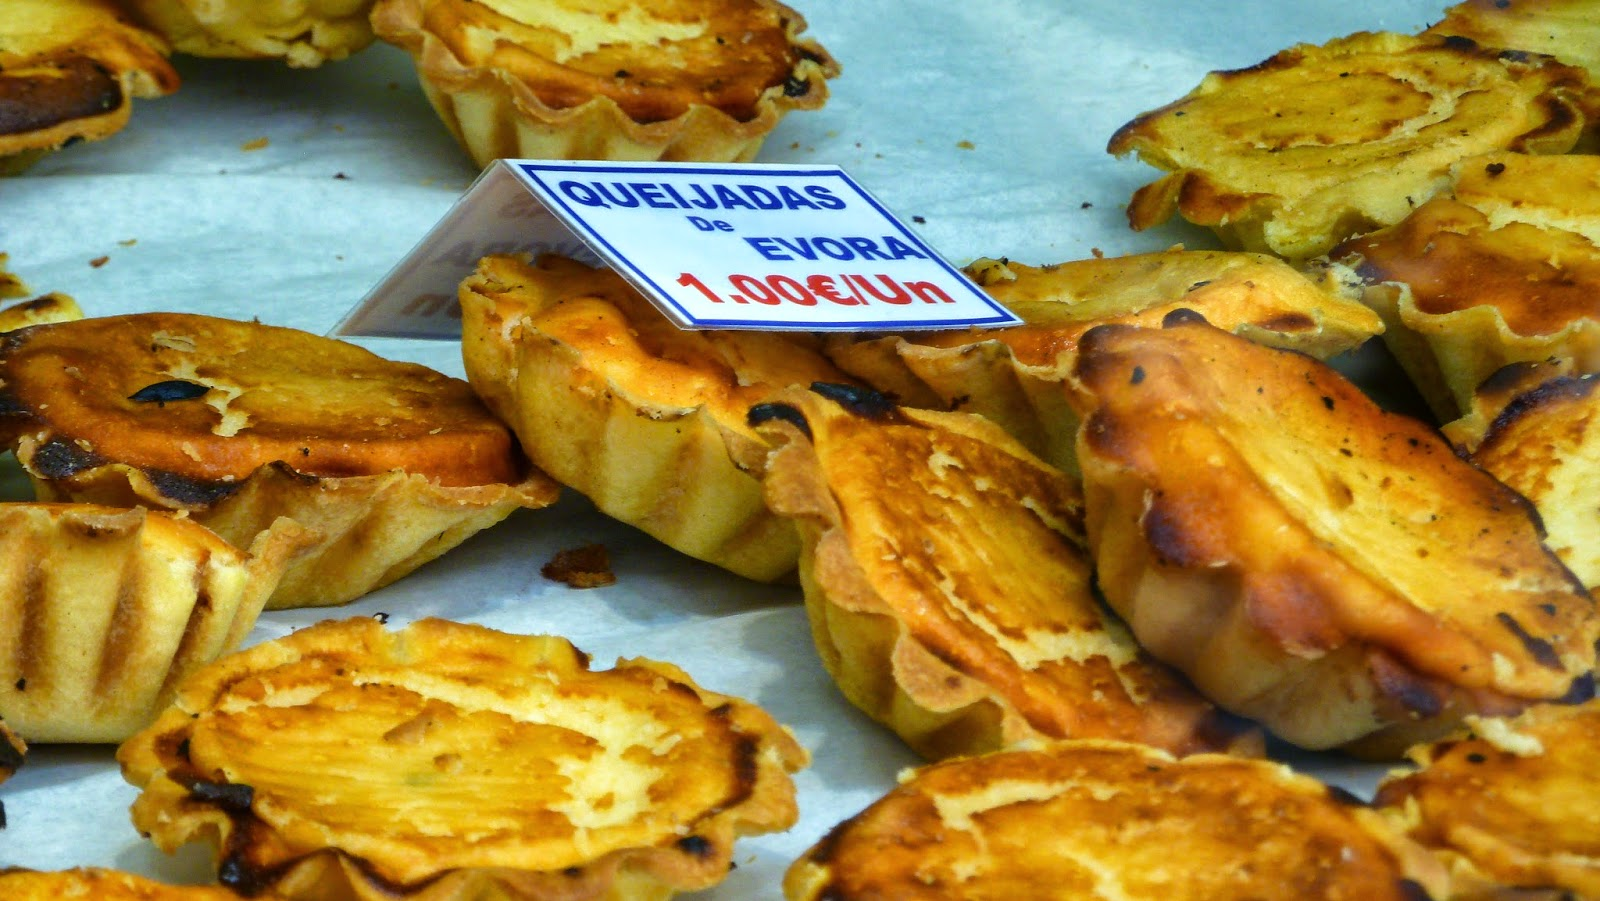 When cycling Portugal, eat delicious cheese tarts from Evora